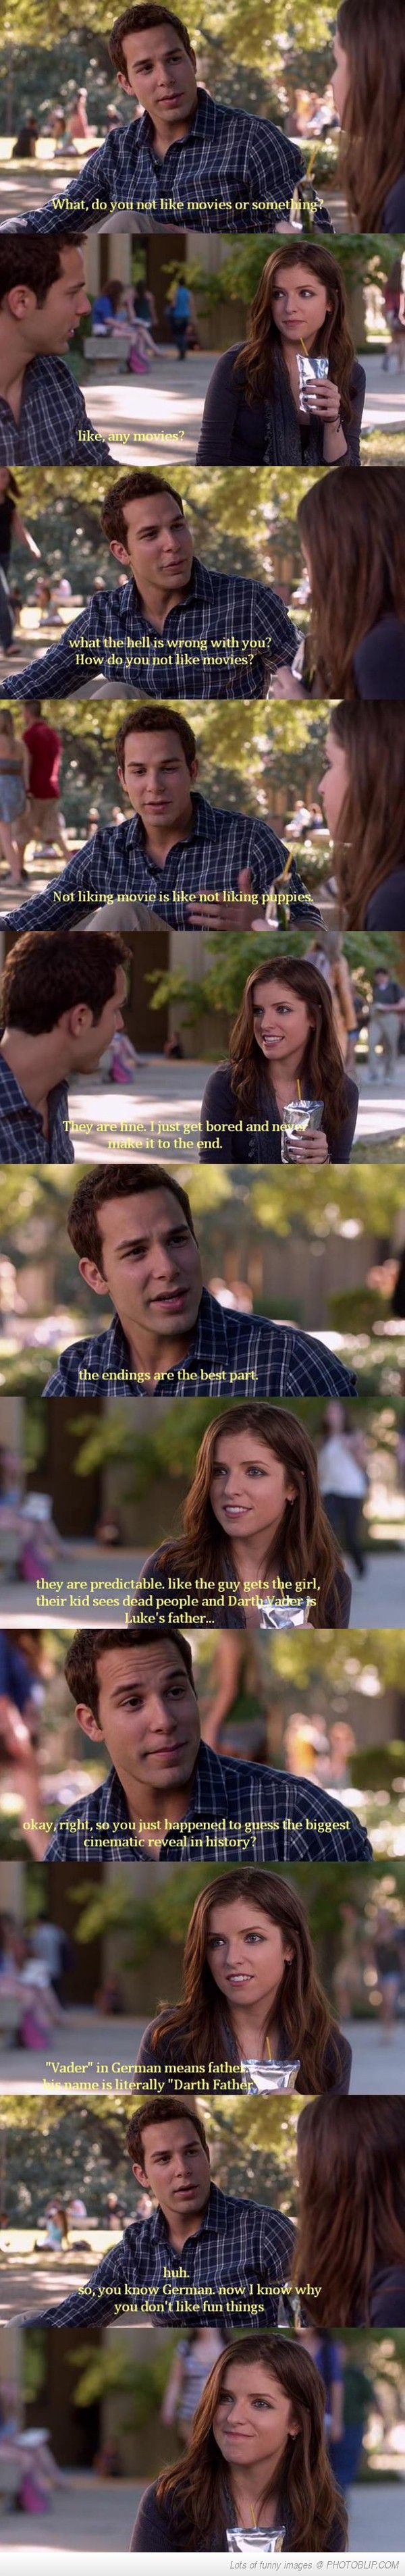 Pitch Perfect One Of The Best Scenes